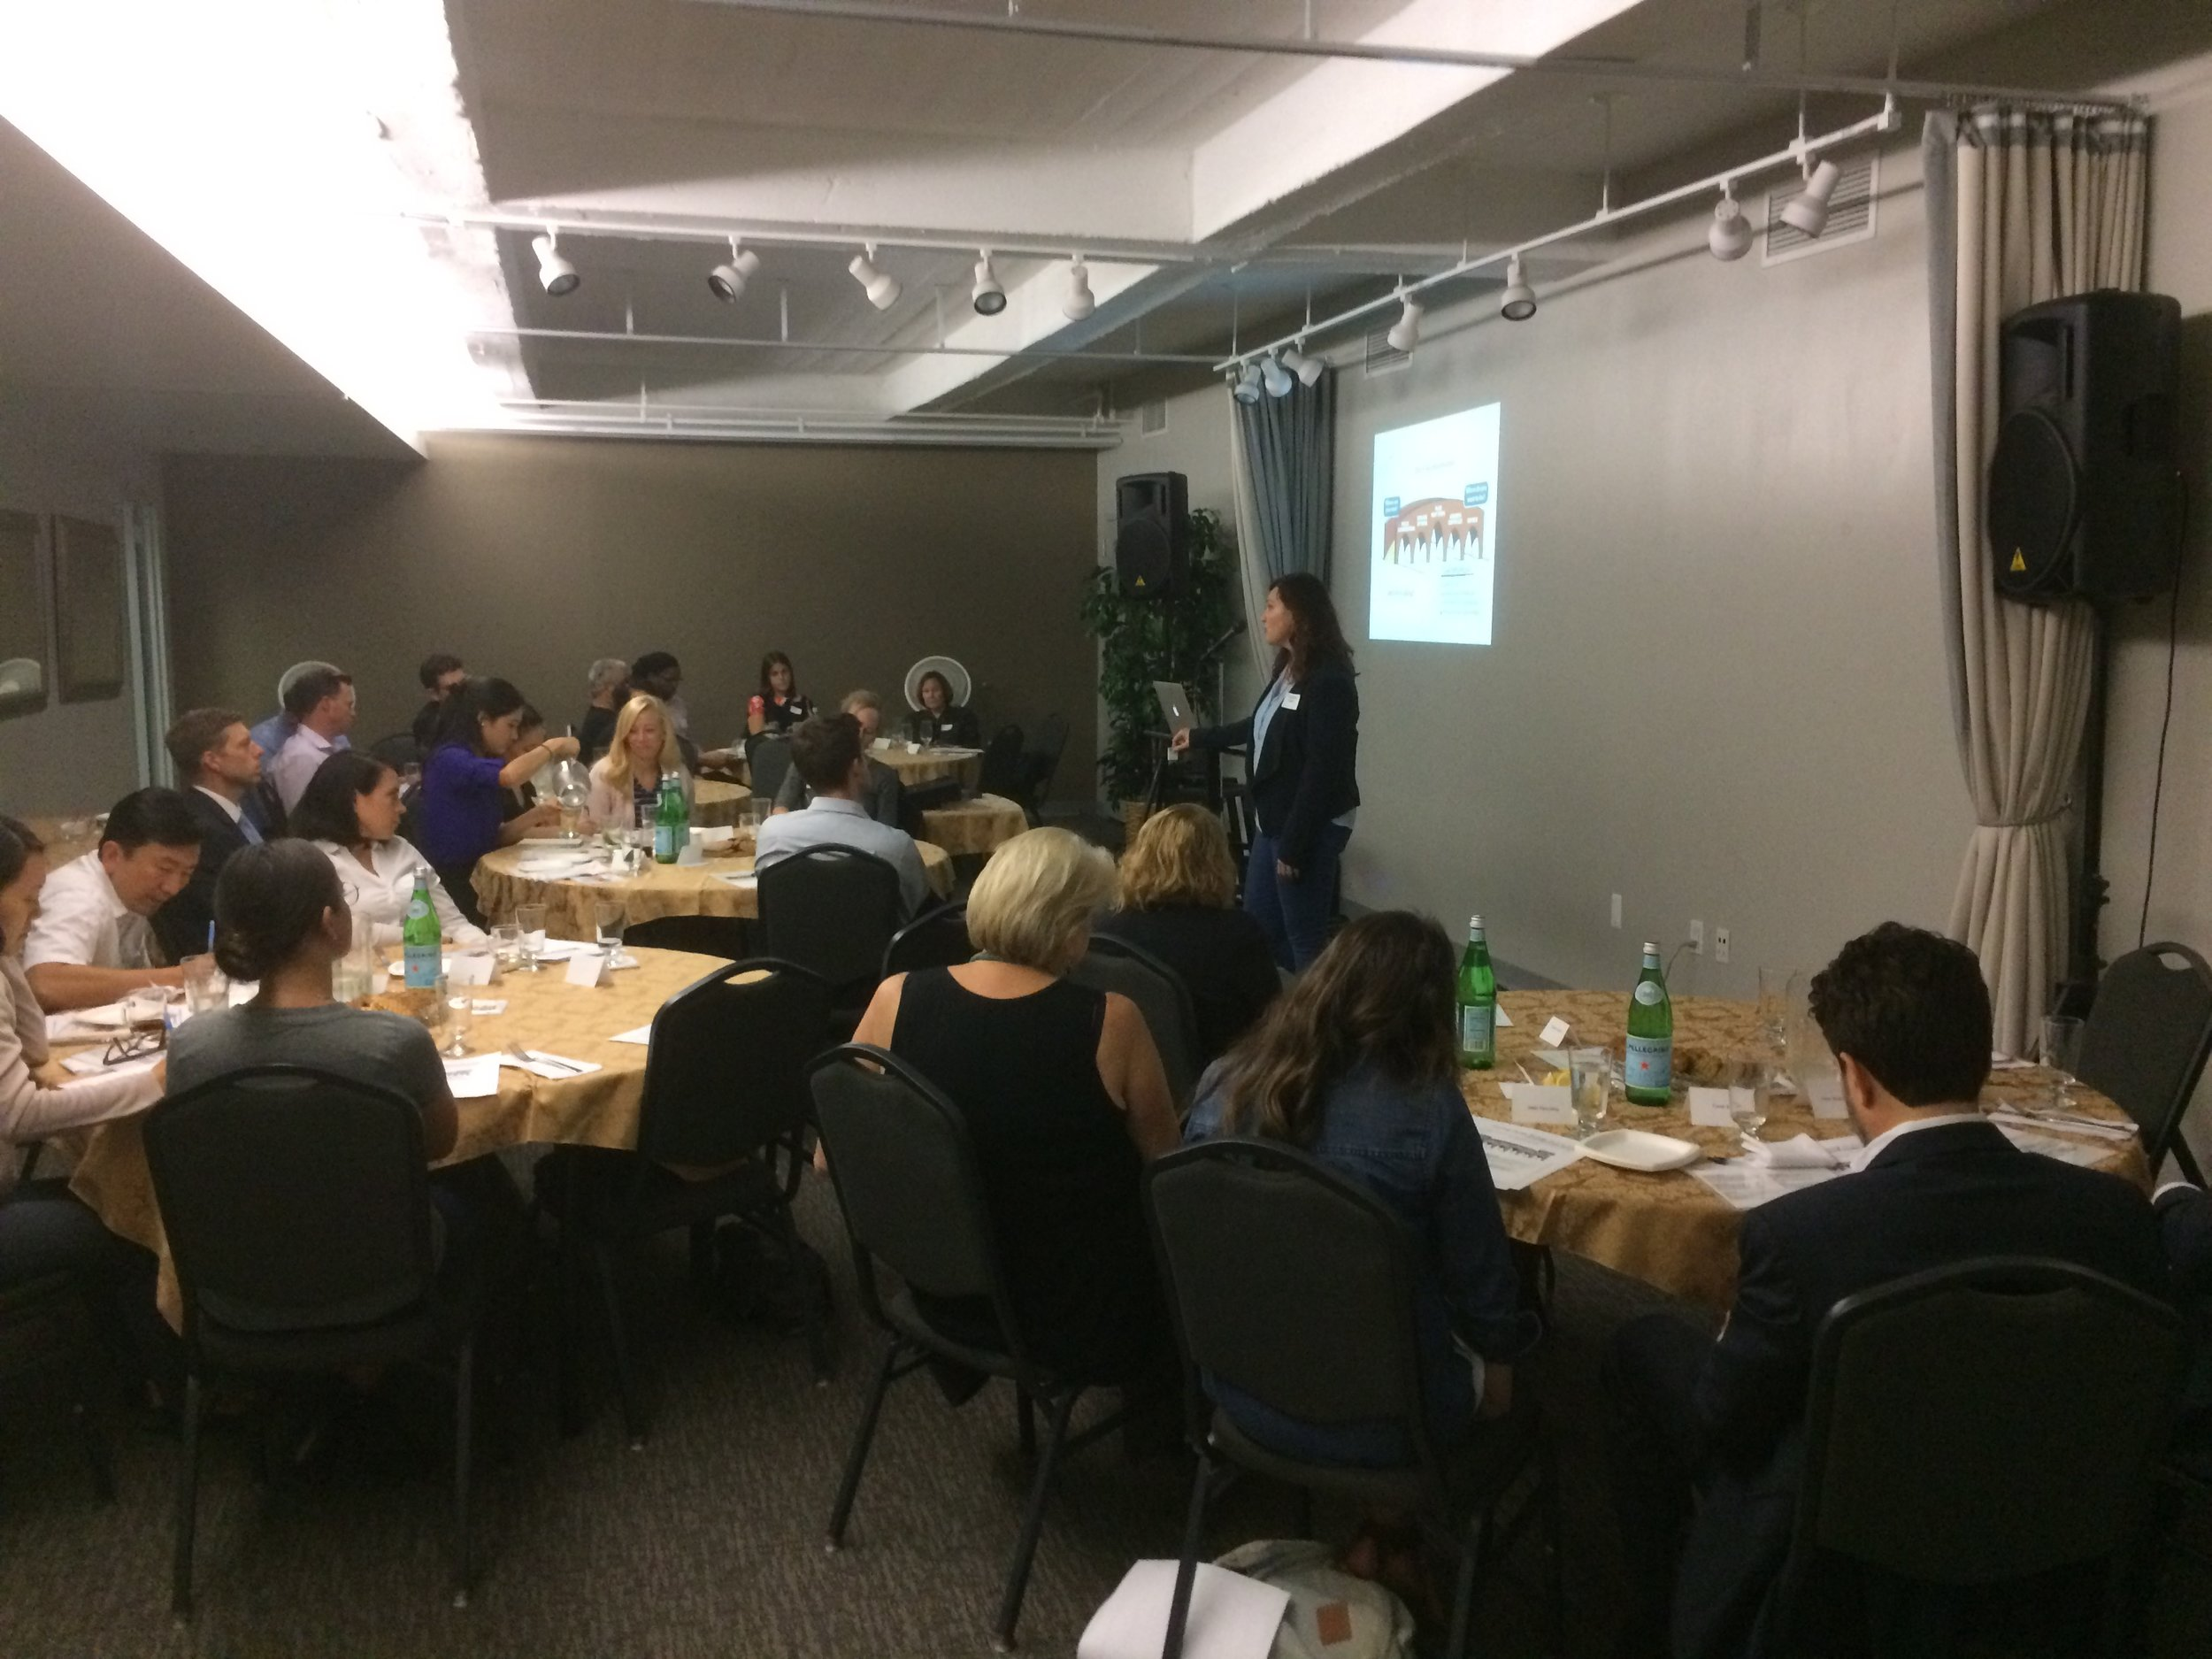 The coaching training during the launch event for the Mentor Millennial Initiative.